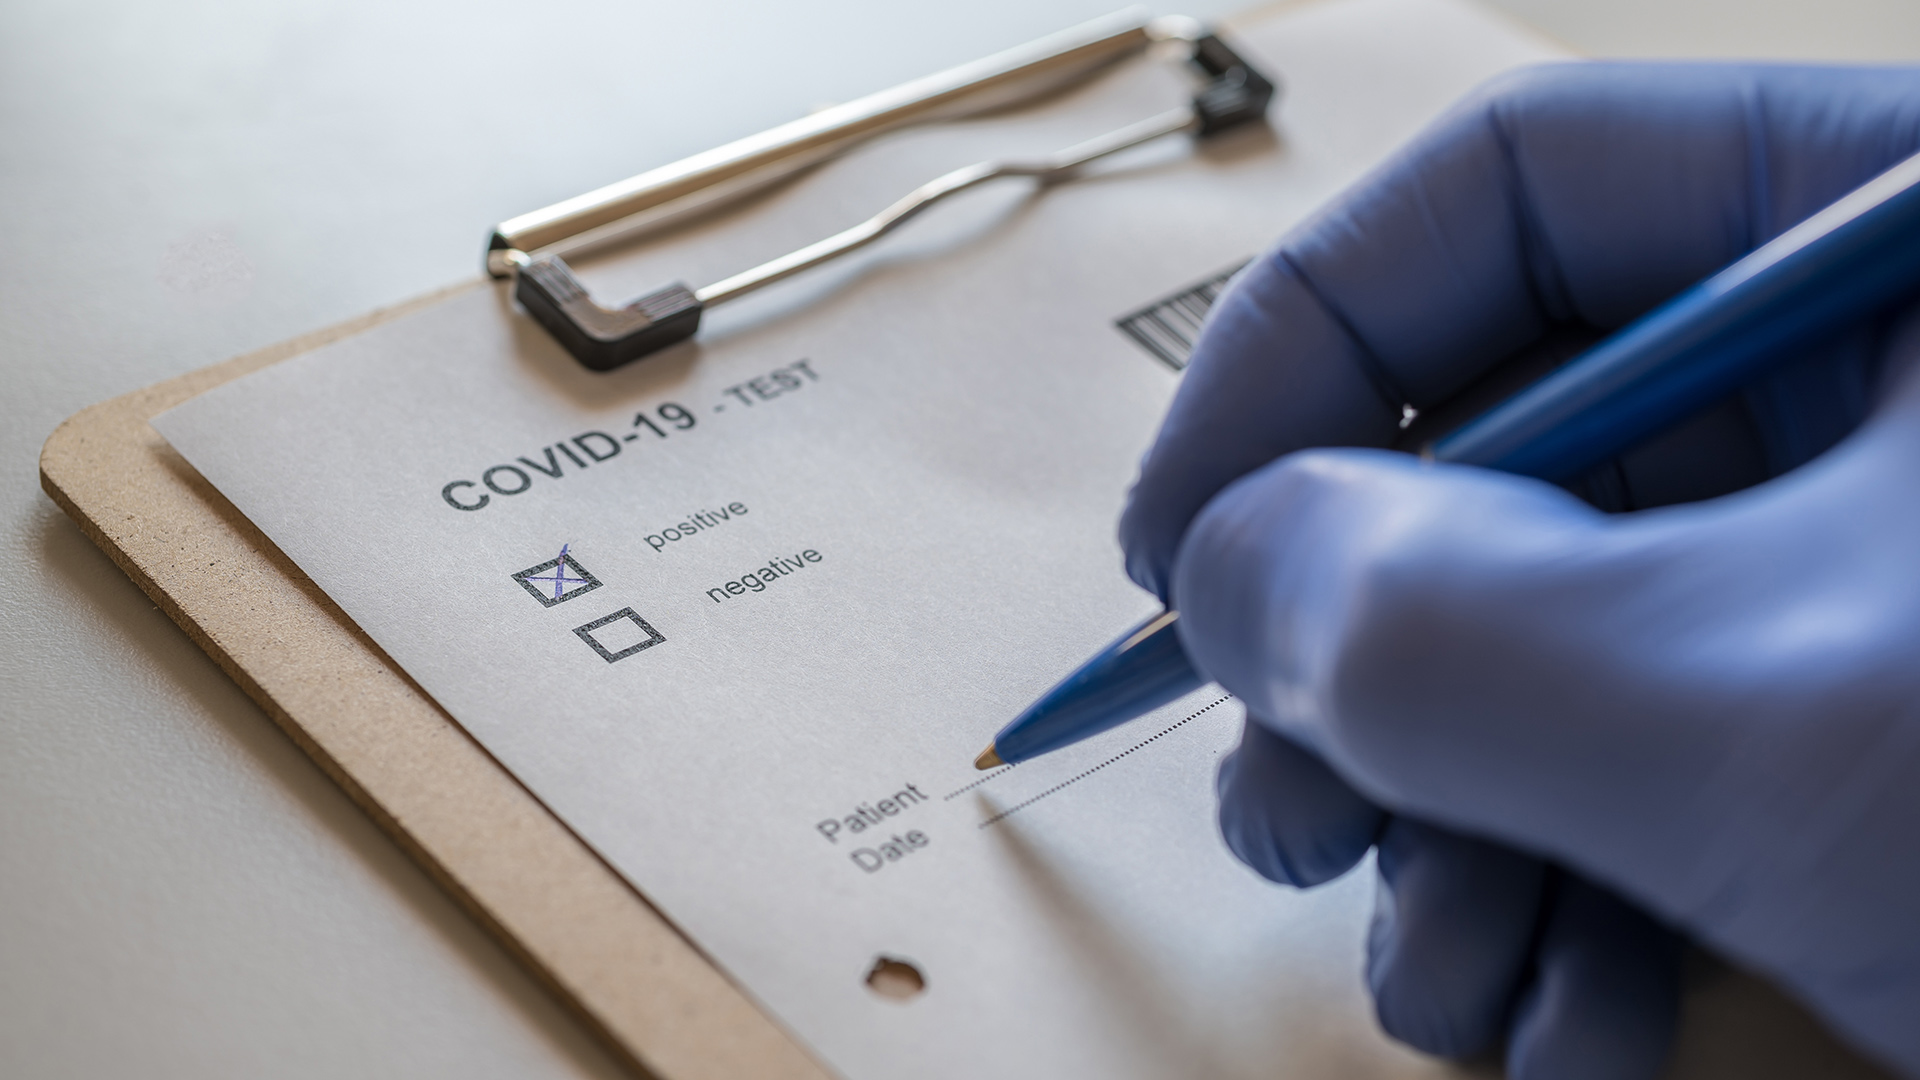 Gloved hand with COVID-19 checklist